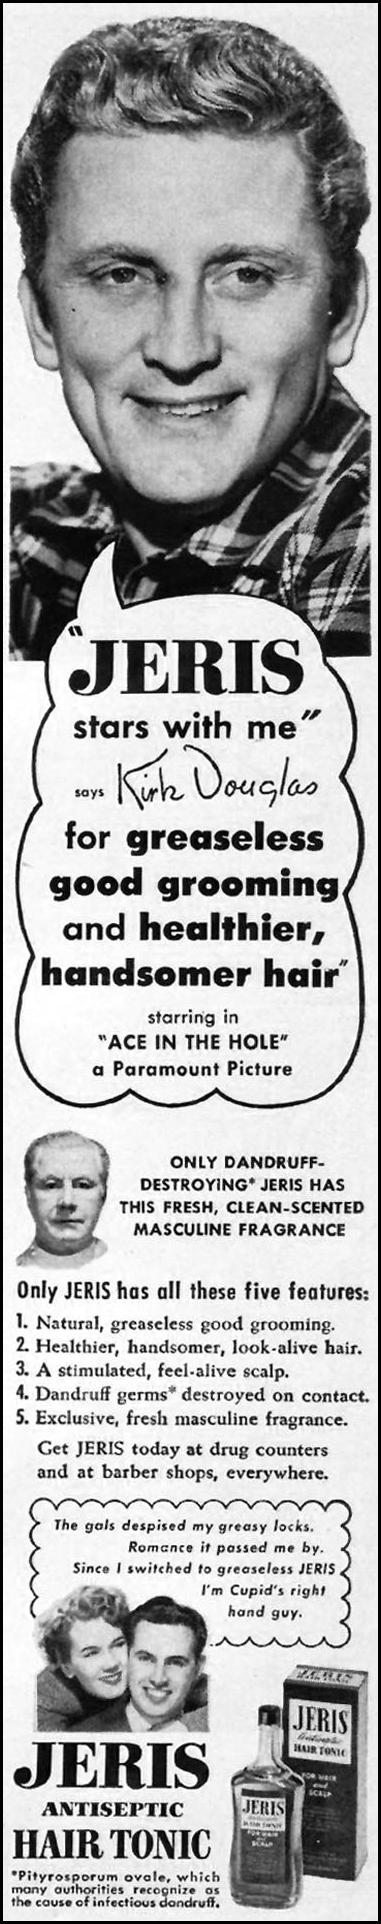 JERIS HAIR TONIC LIFE 04/30/1951 p. 117